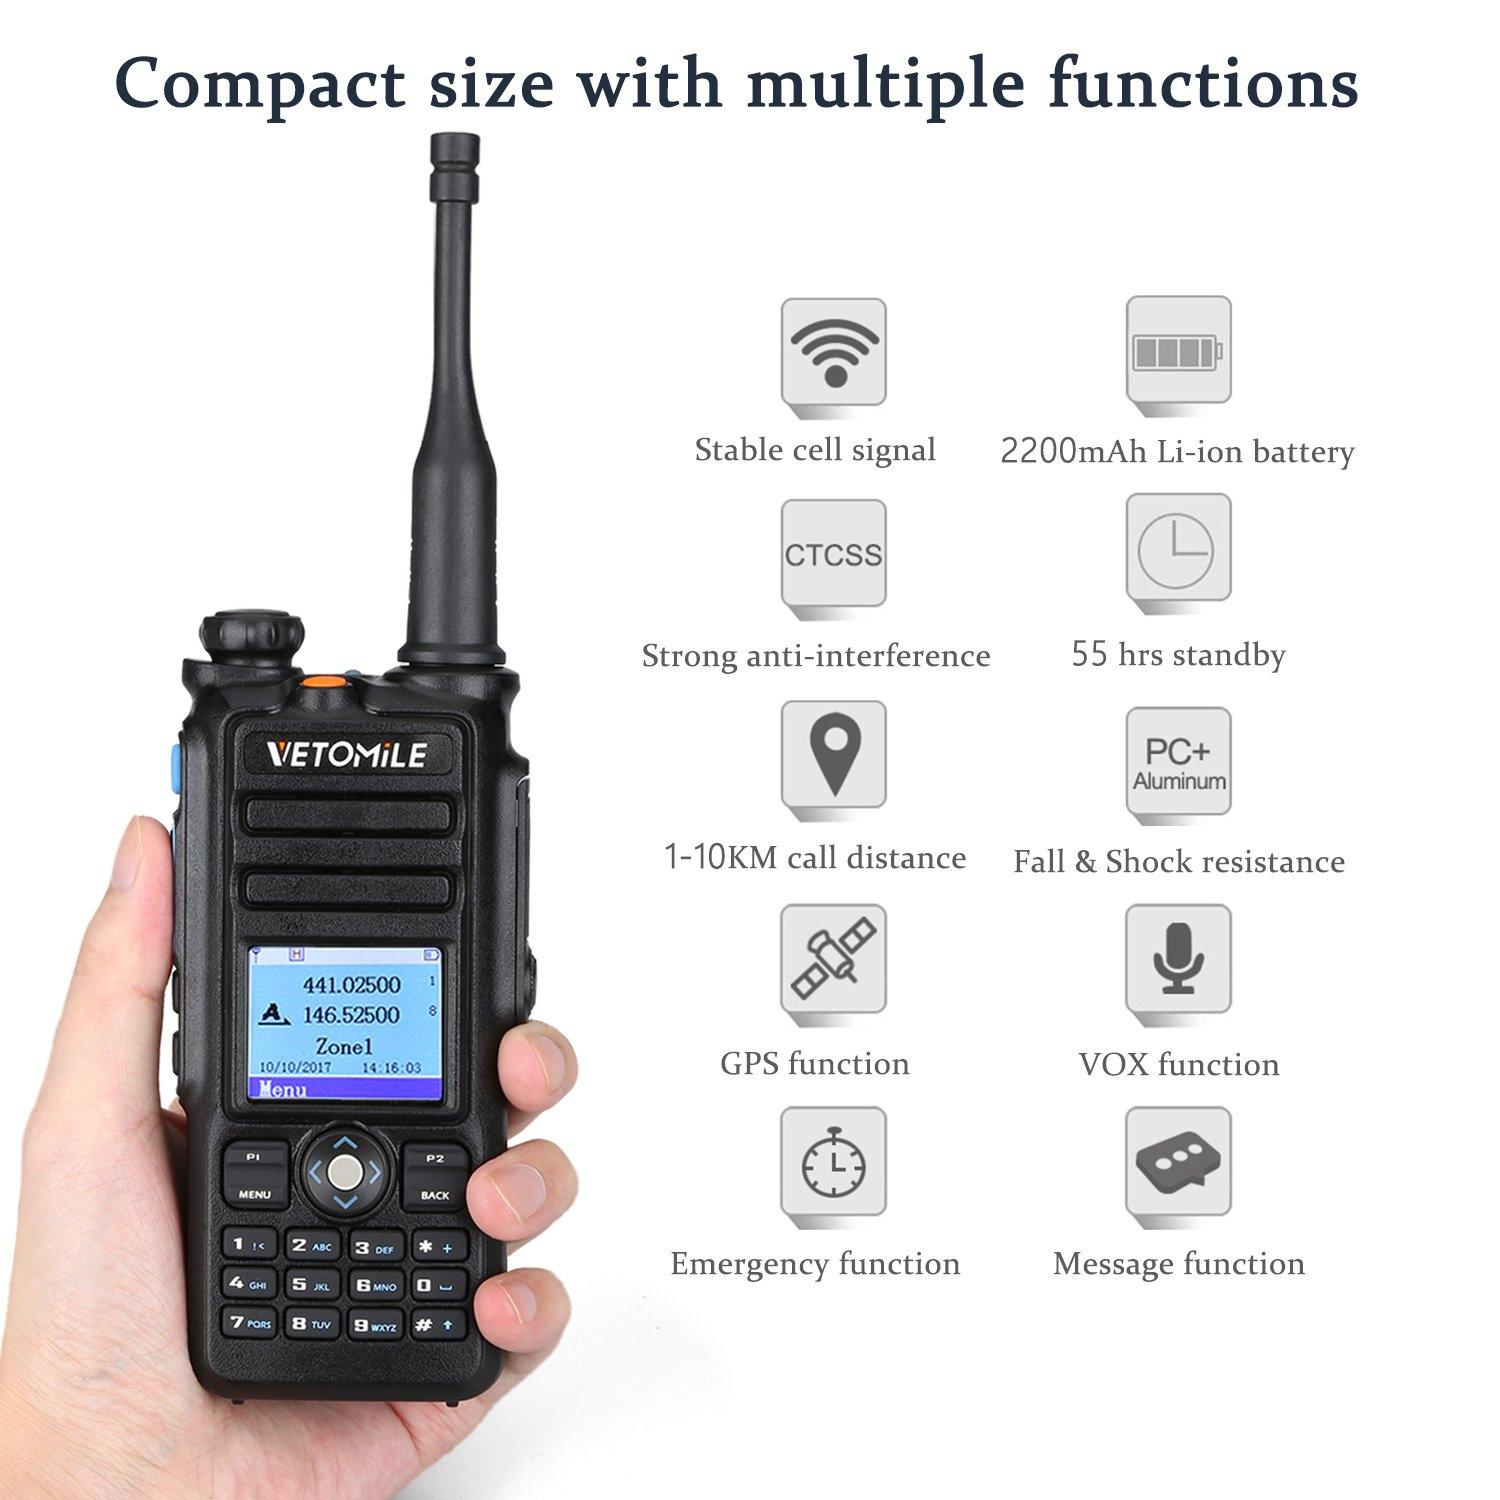 VETOMILE V-2017 Dual Band DMR Digital/Analog Two Way Radio 5W VHF 136-174MHZ & UHF 400-480MHz Walkie Talkie 3000 Channels IP67 Waterproof with GPS Function and Programming Cable by VETOMILE (Image #4)